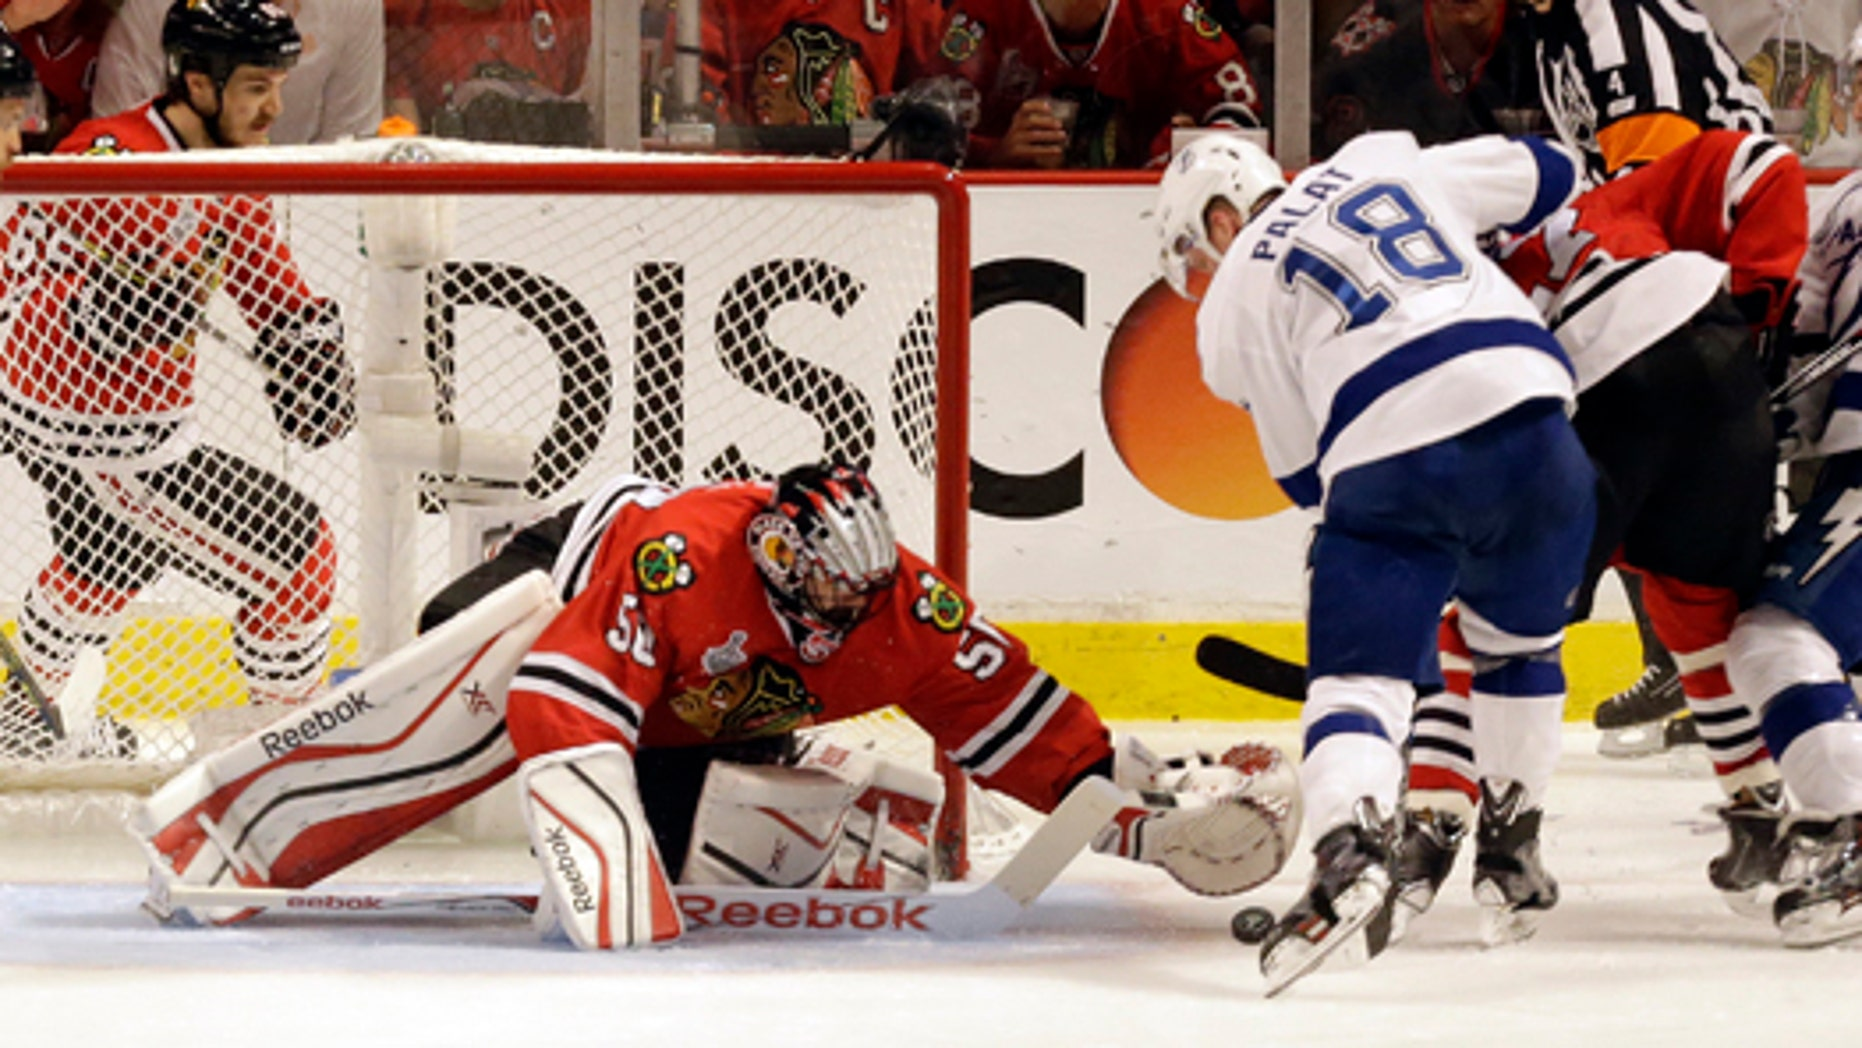 June 8, 2015: The Tampa Bay Lightning's Ondrej Palat (18) scores past Chicago Blackhawks goalie Corey Crawford (50) during the third period in Game 3 of the NHL hockey Stanley Cup Final in Chicago. (AP Photo/Charles Rex Arbogast)